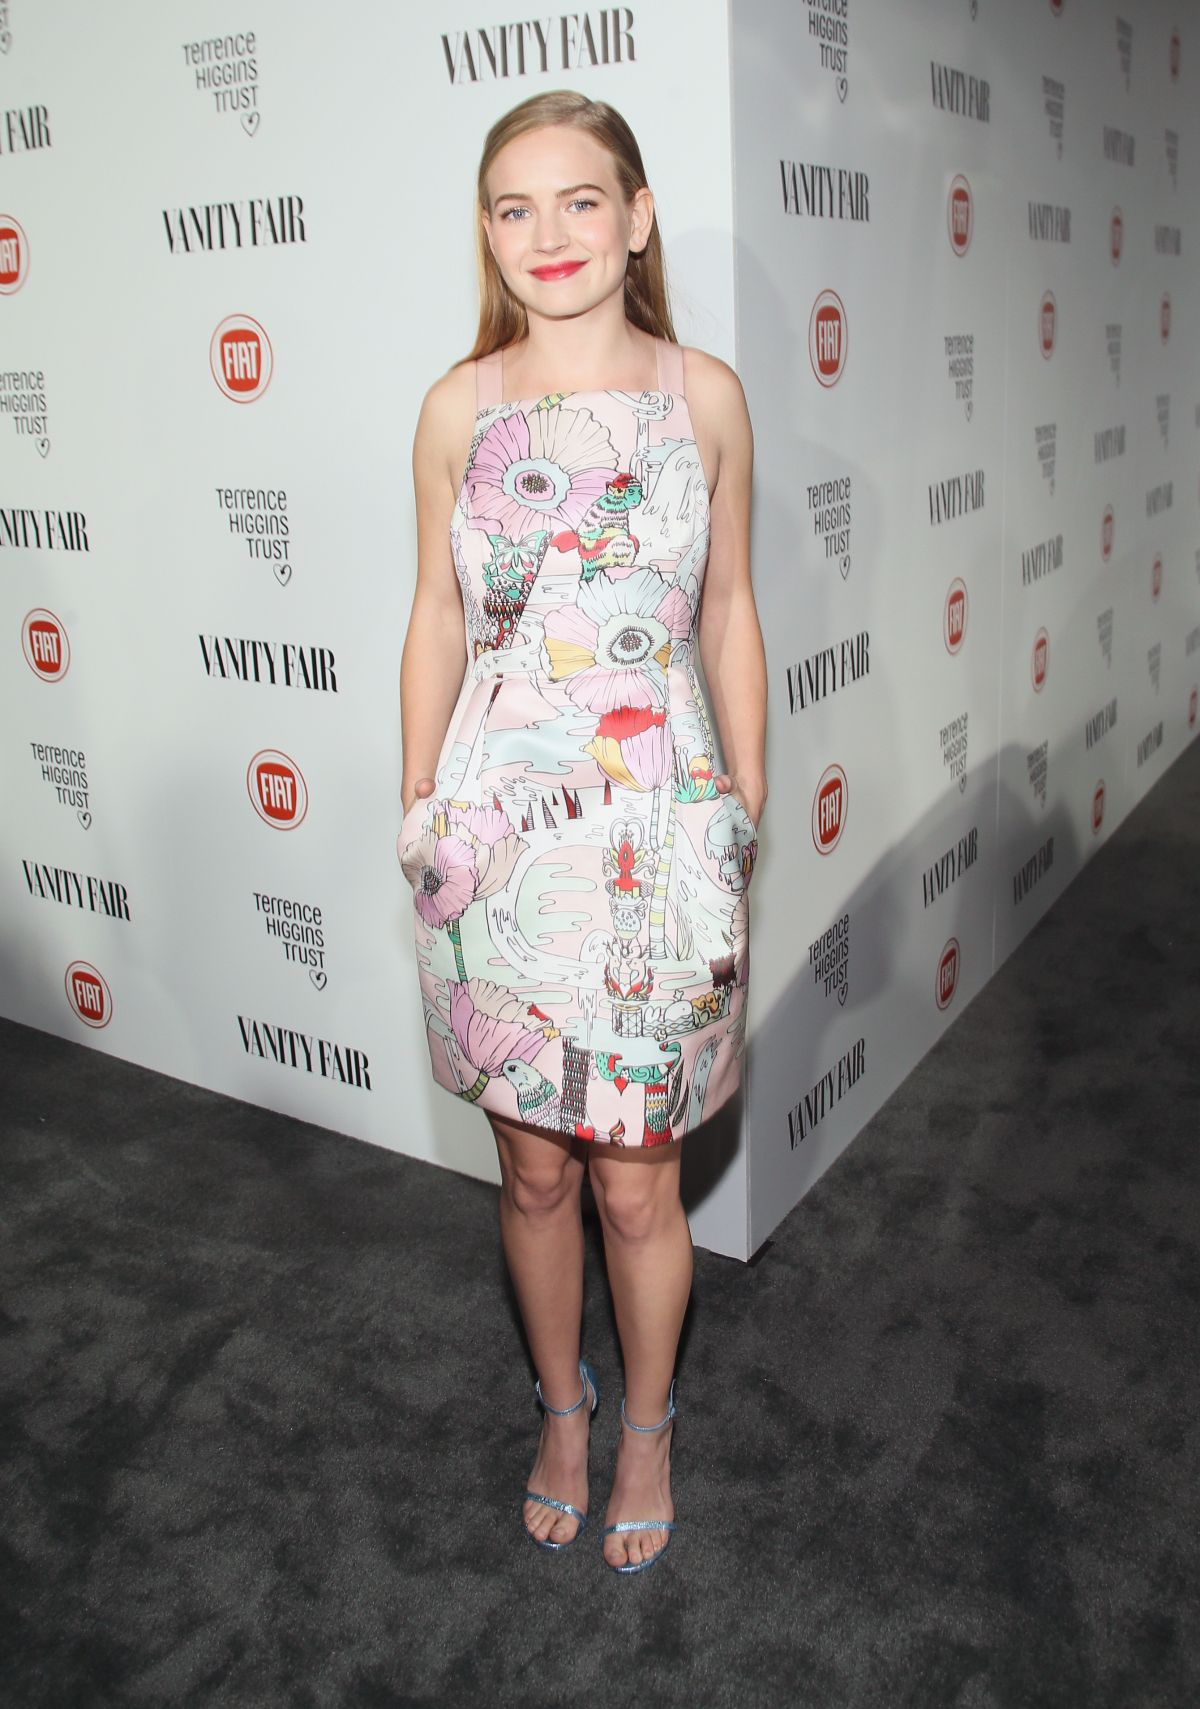 BRITT ROBERTSON at Vanity Fair and Fiat Celebration of Young Hollywood in Los Angeles